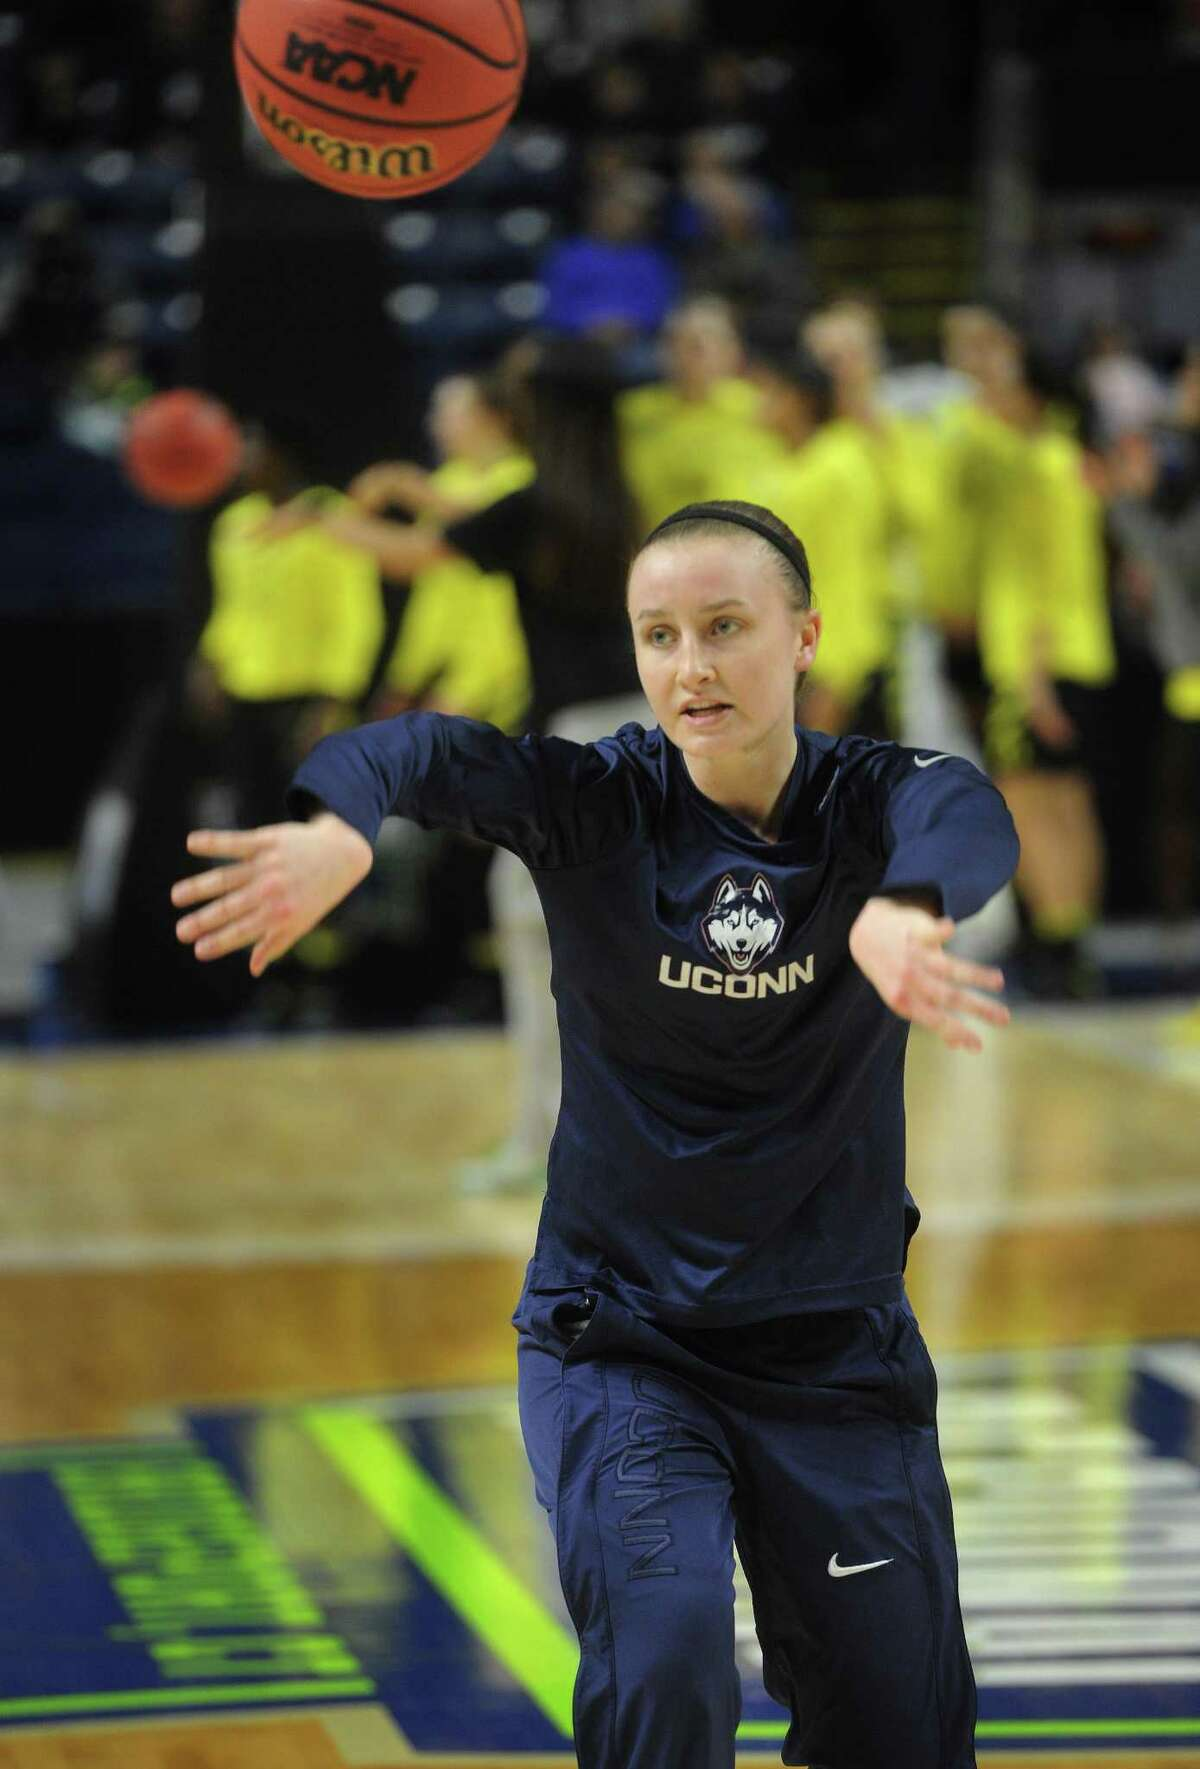 UConn's Tierney Lawlor, of Ansonia, warms up before Monday night's game in Bridgeport.